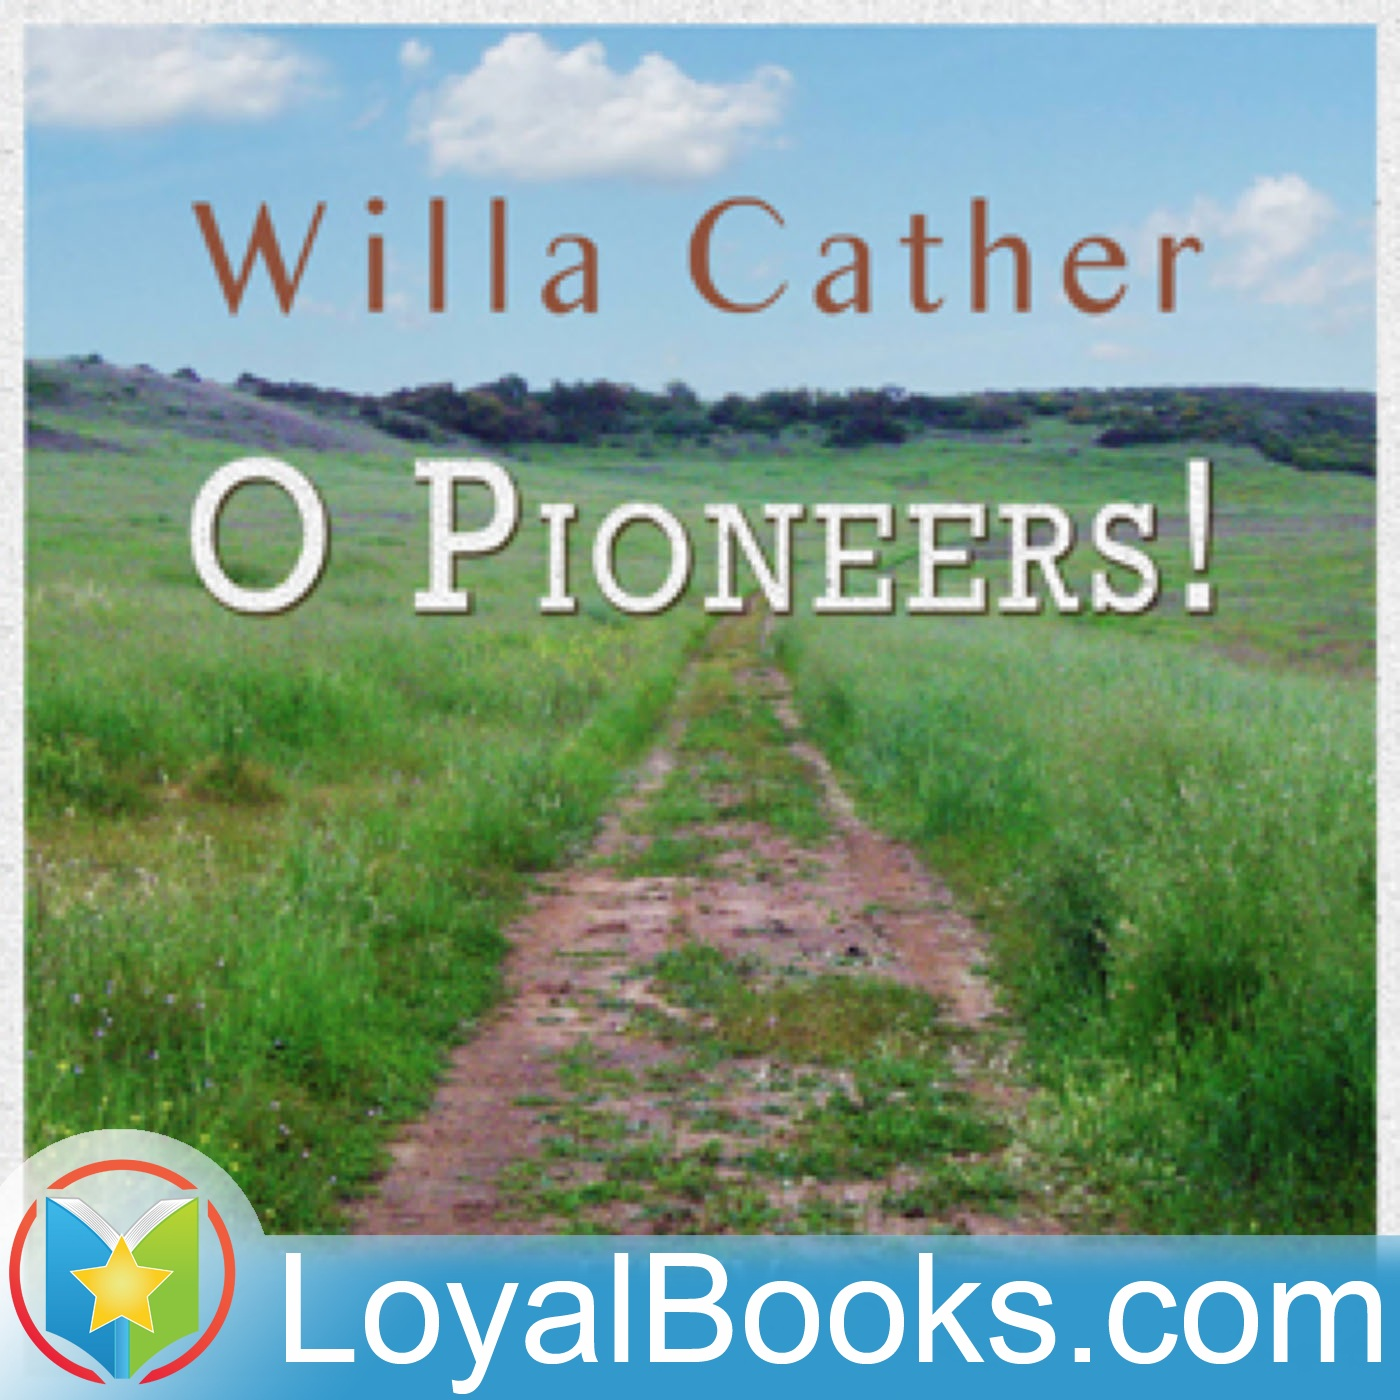 <![CDATA[O Pioneers! by Willa Cather]]>